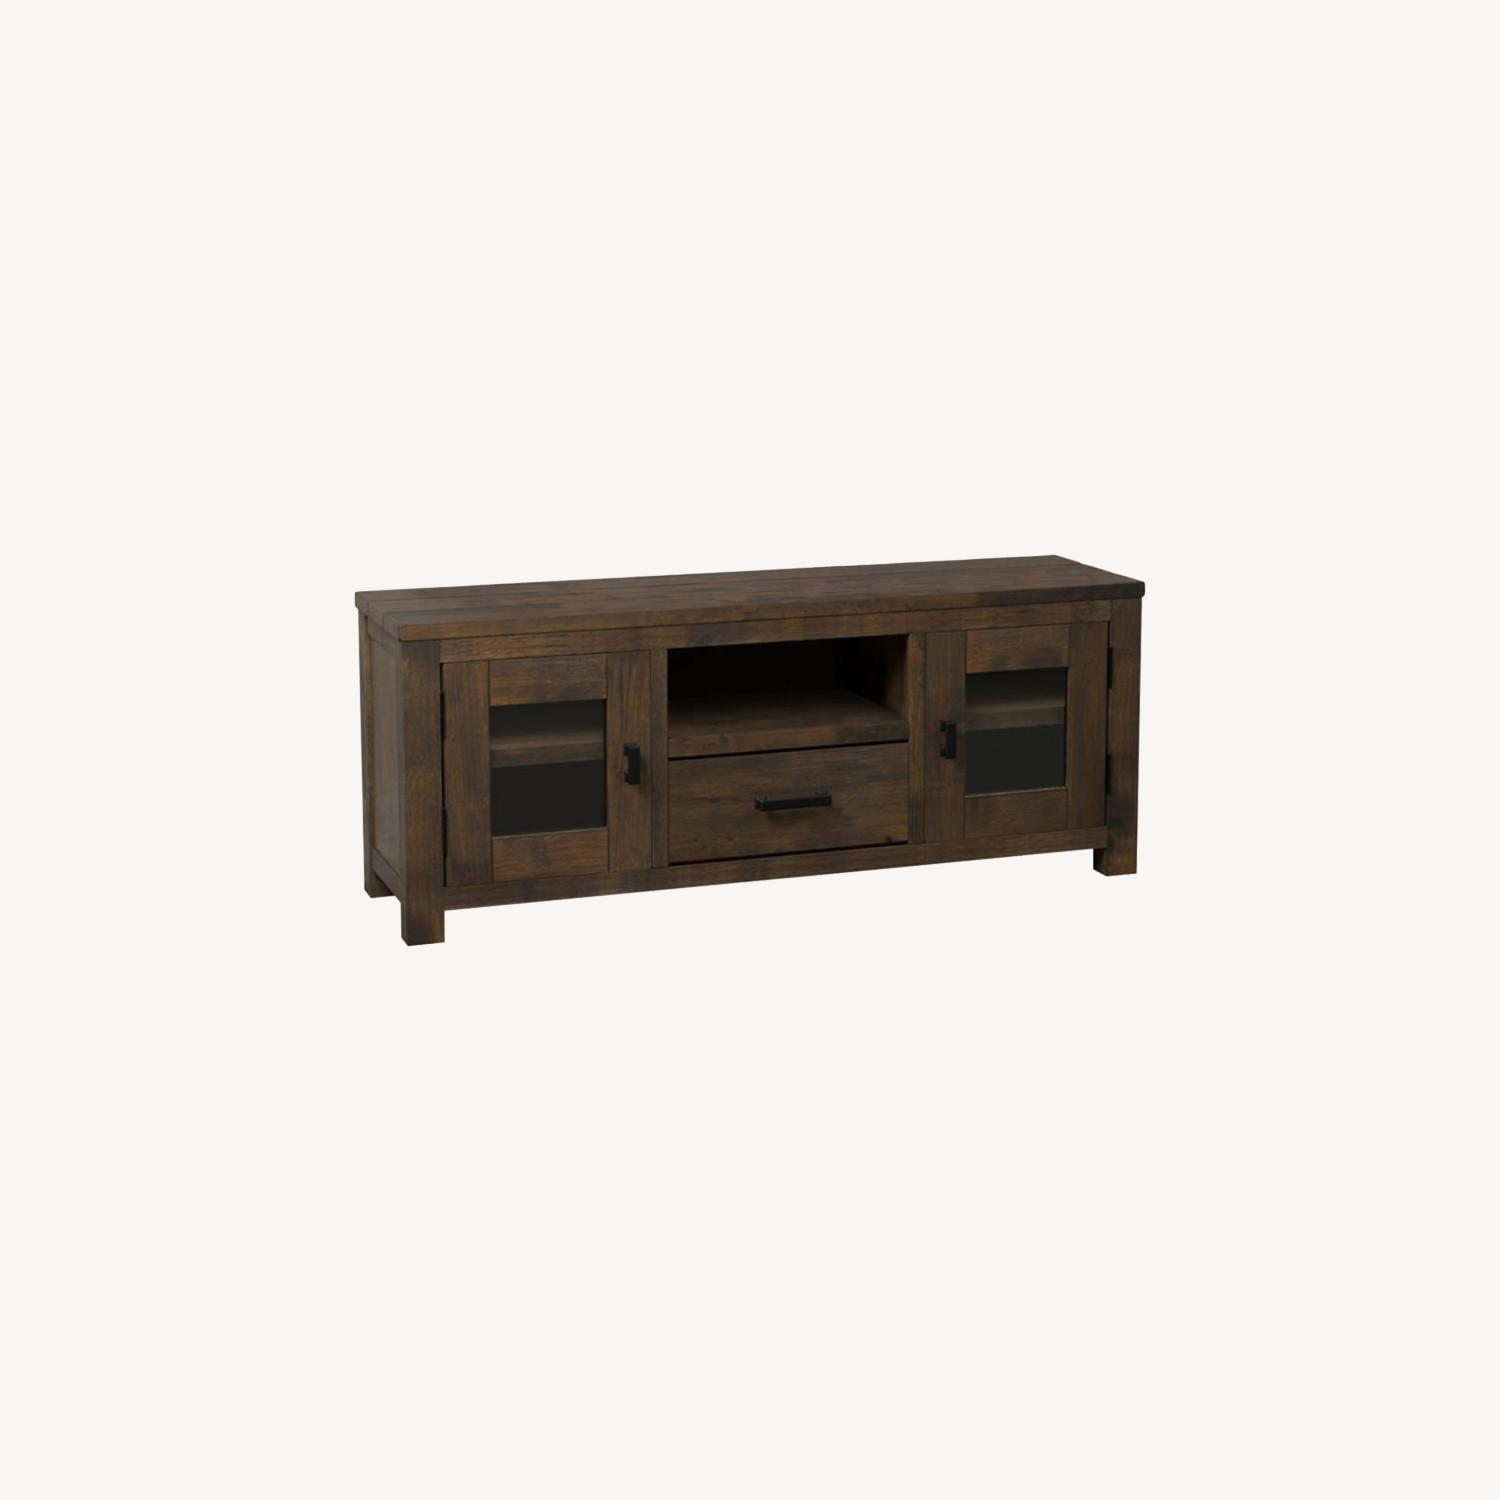 75-Inch TV Console In Rustic Golden Brown - image-3